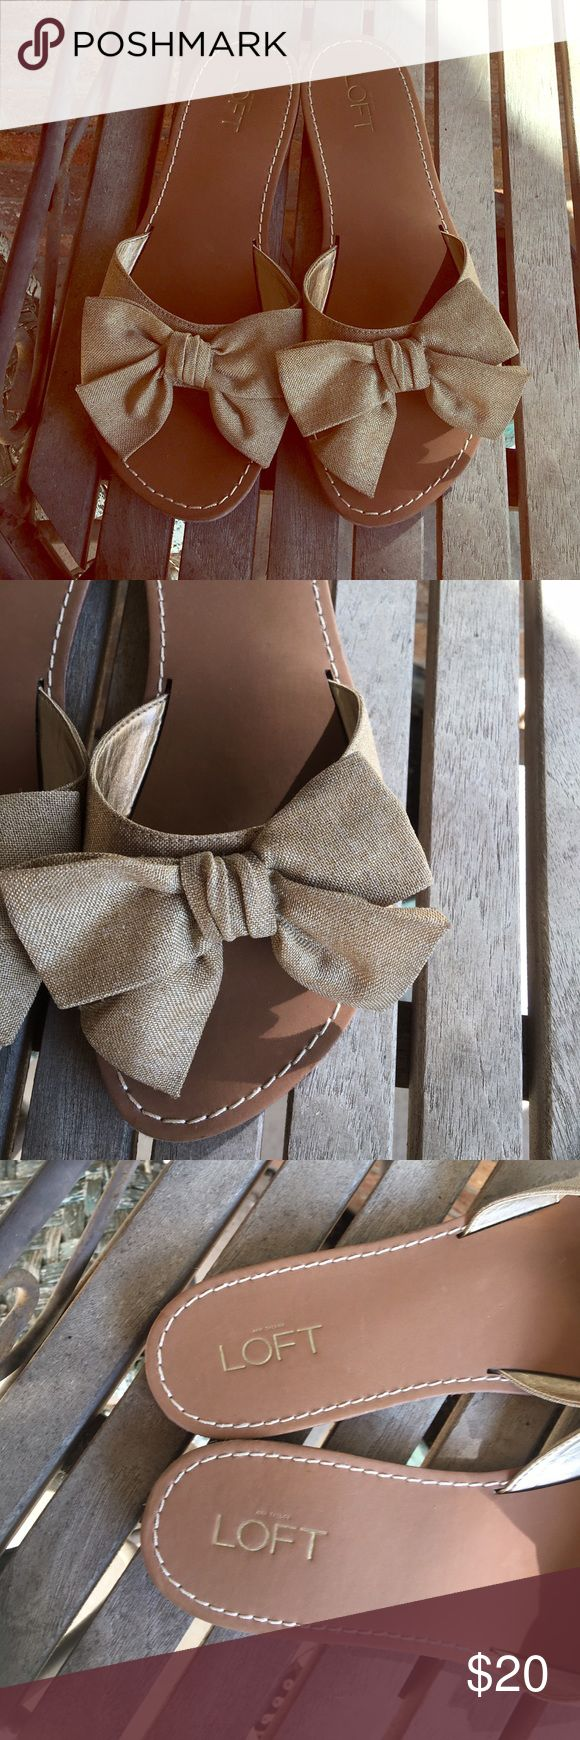 """Anne Taylor Loft Slide On Valencia Tan Bow Sandals Adorable! Anne Taylor Loft Valencia Slide On Tan Bow Sandals. Great condition! Textile upper. Rubber soles. Go with anything Sandals. Very comfy and versatile. Retro inspired. 1/2"""" heel. Ann Taylor Shoes Sandals"""